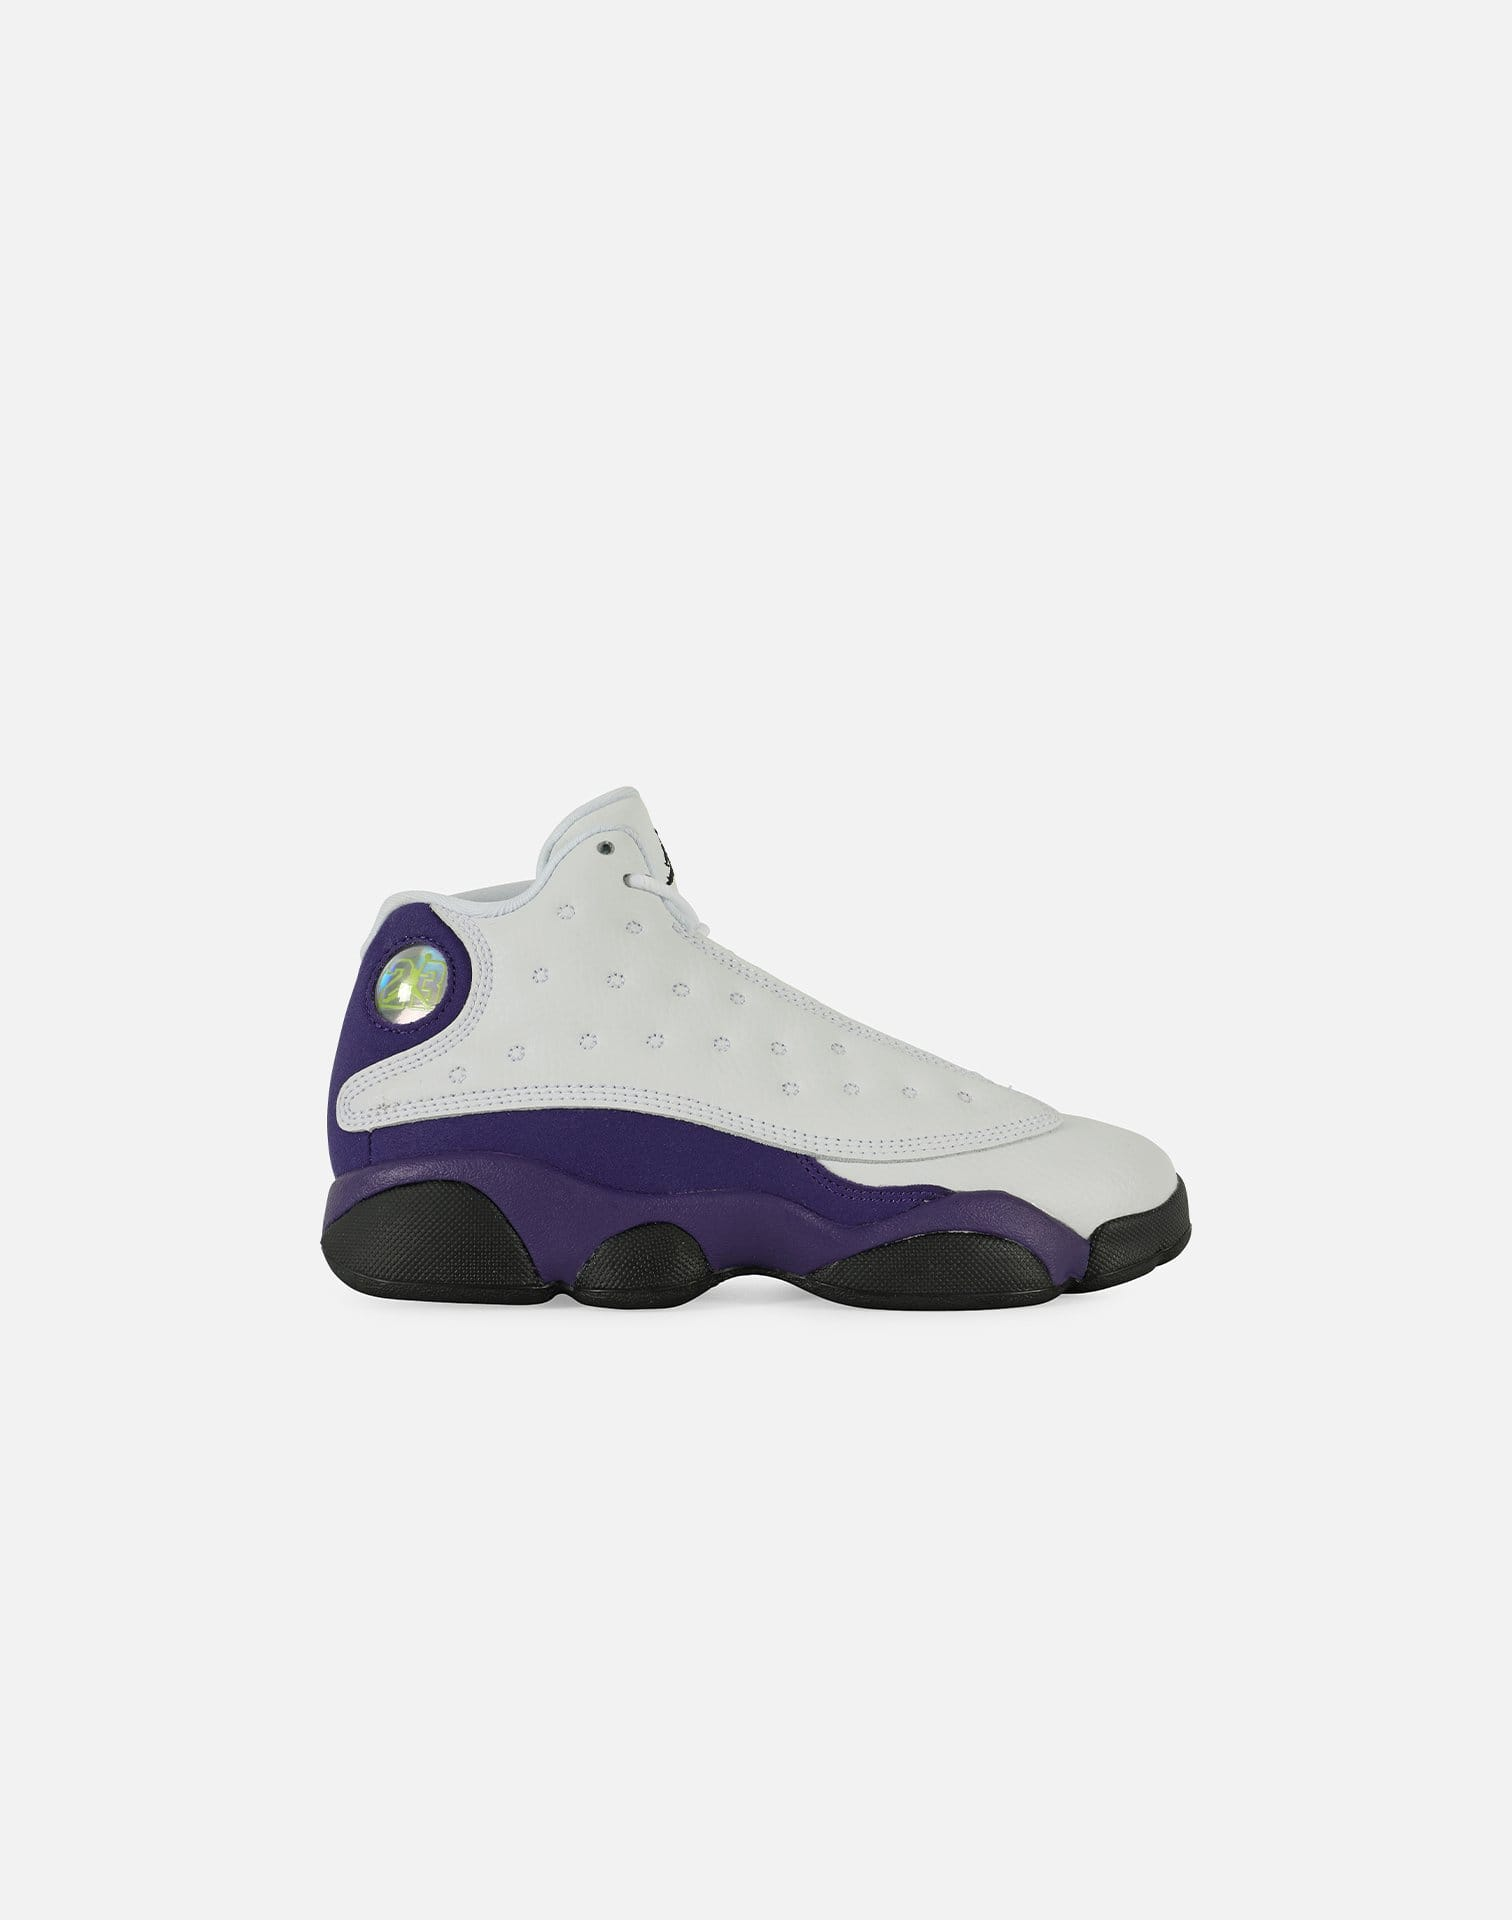 Jordan Air Jordan Retro 13 'Lakers' Pre-School